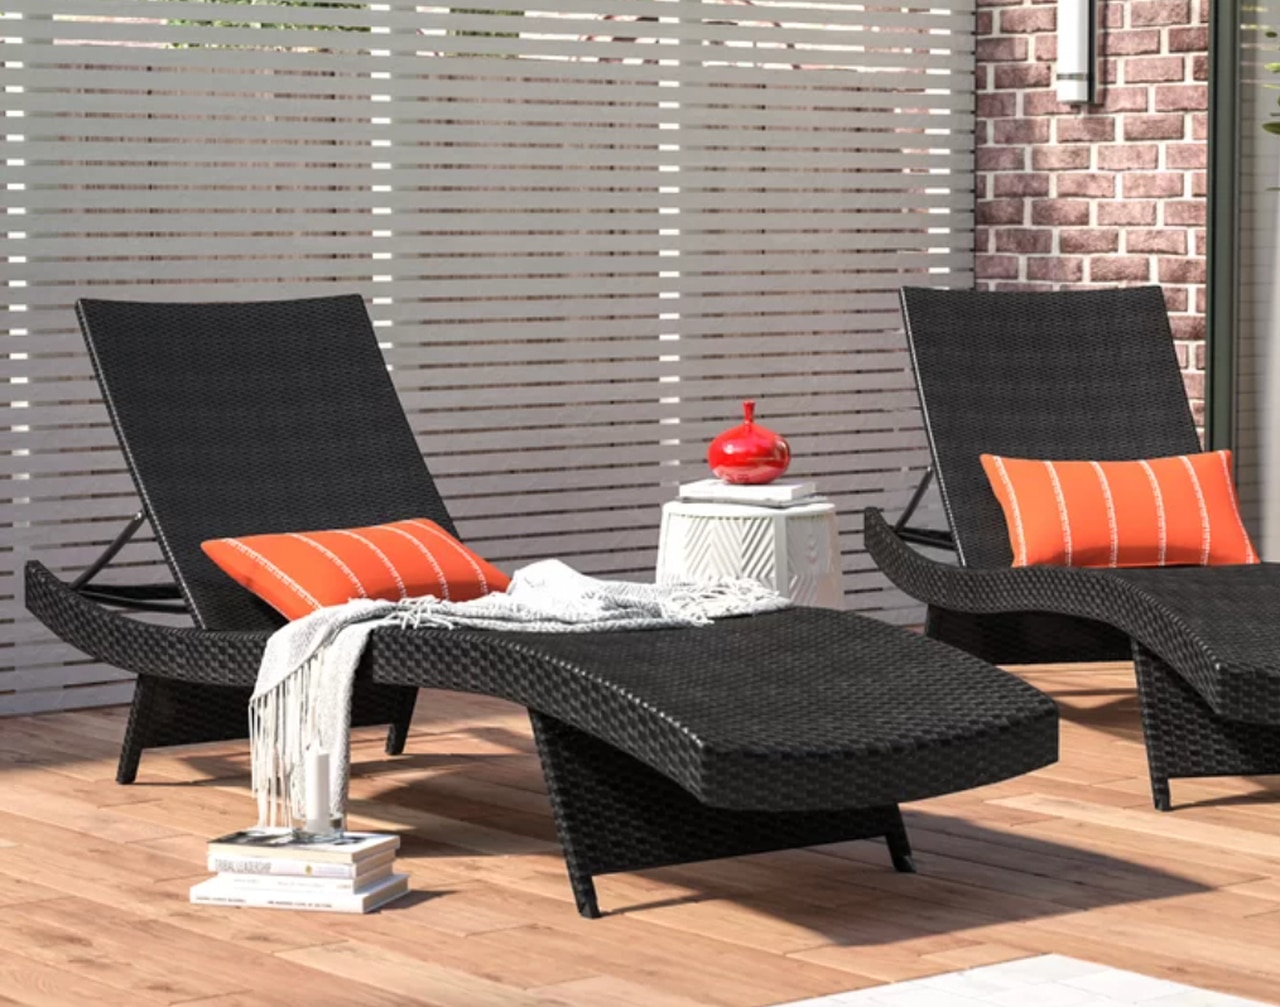 https www syracuse com living 2021 05 wayfair memorial day sale 2021 outdoor and patio furniture couches sectionals decor and more up to 70 off html